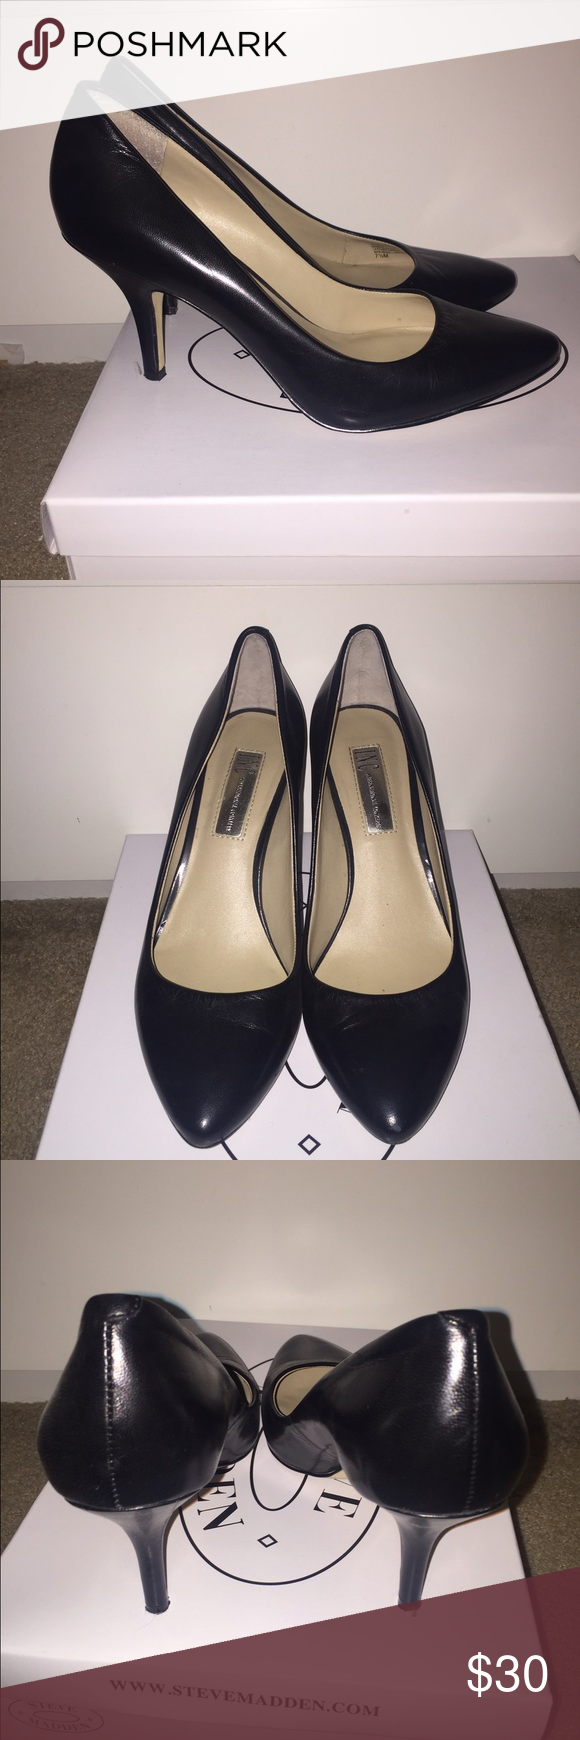 INC black pumps 7.5 Used condition, size 7.5. By the brand INC. 3 inch heel INC International Concepts Shoes Heels